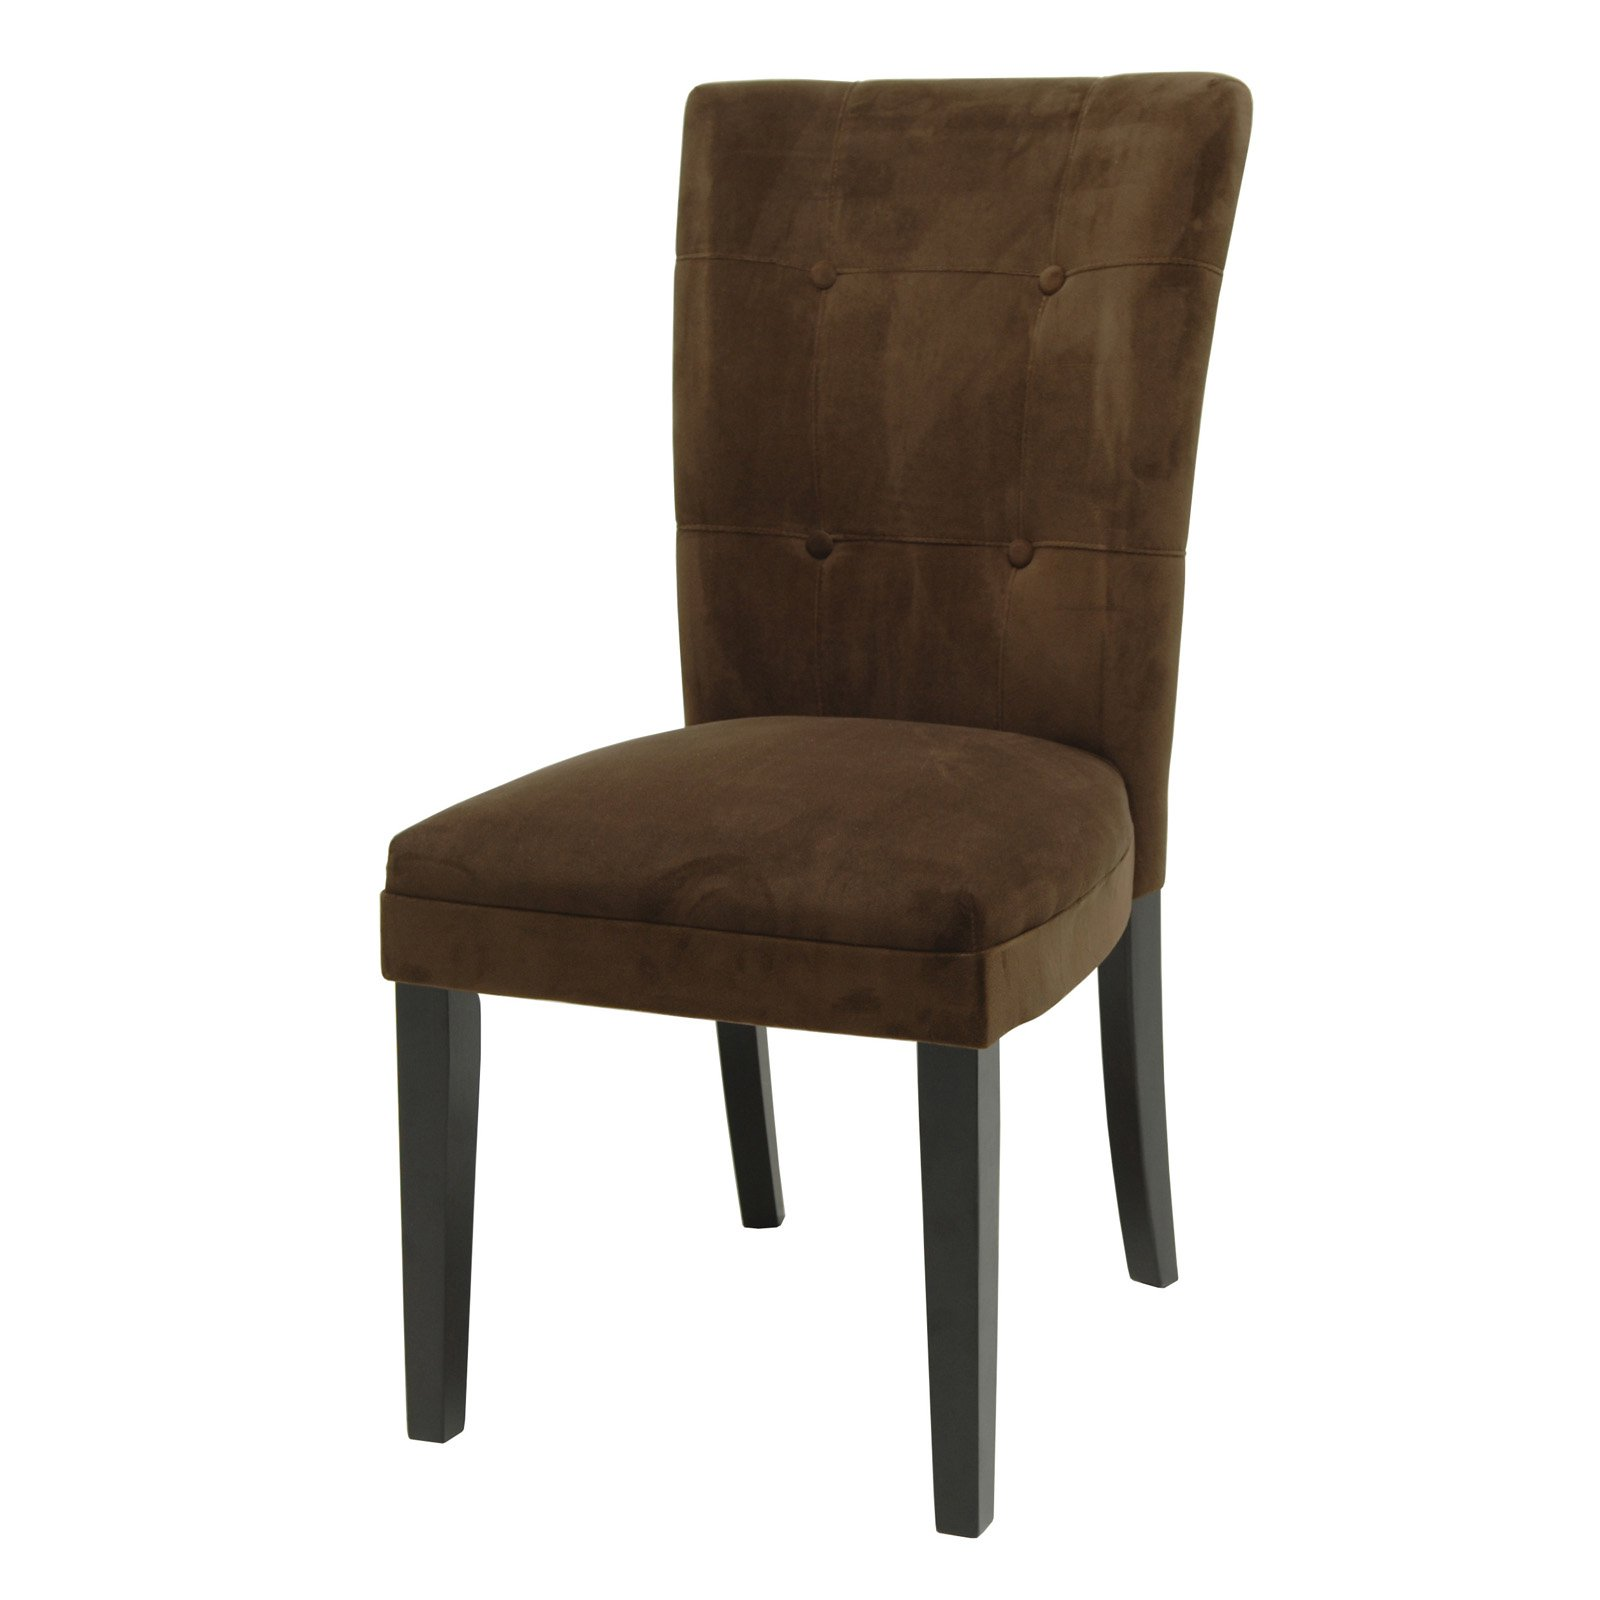 Steve Silver Matinee Parsons Chairs - Set of 2